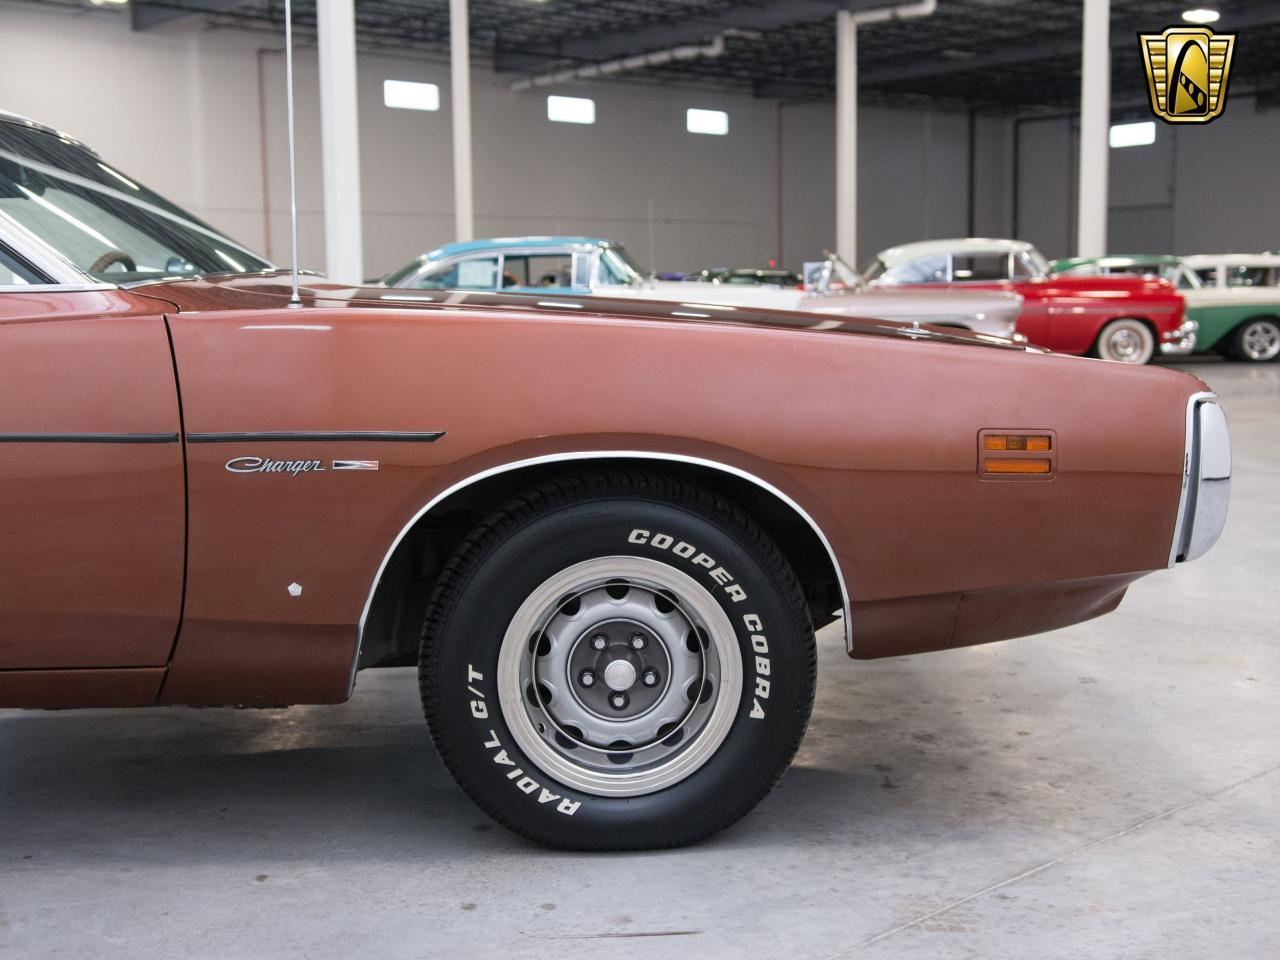 Large Picture of 1971 Dodge Charger located in Kenosha Wisconsin - $29,995.00 Offered by Gateway Classic Cars - Milwaukee - KEDX